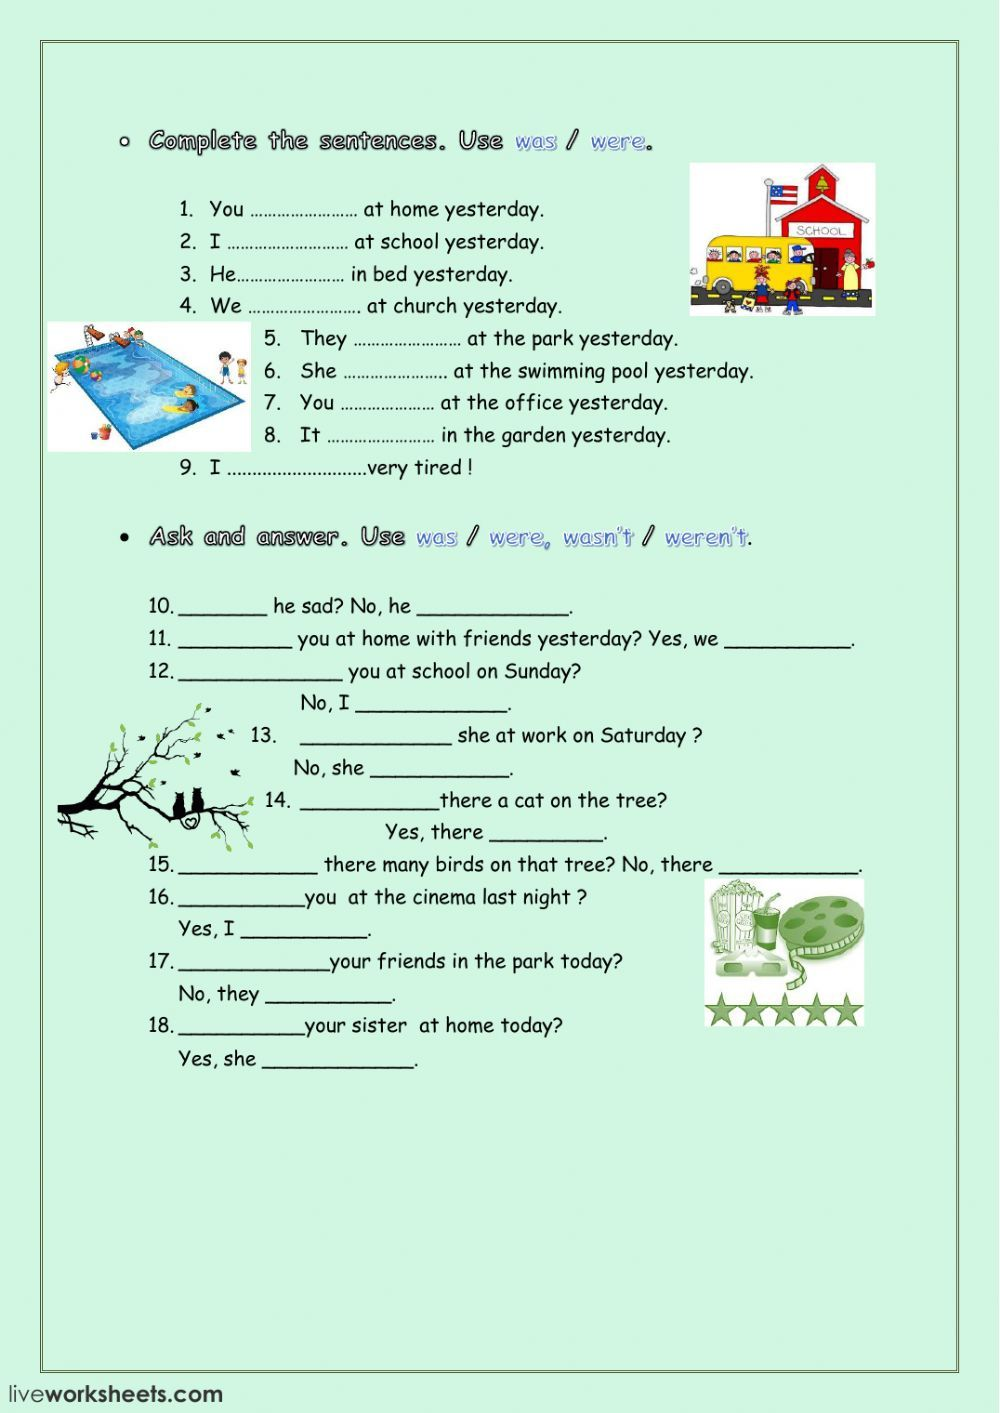 Verb To Be Interactive And Downloadable Worksheet You Can Do The Exercises Online Or Do Learning English For Kids English As A Second Language Time Worksheets